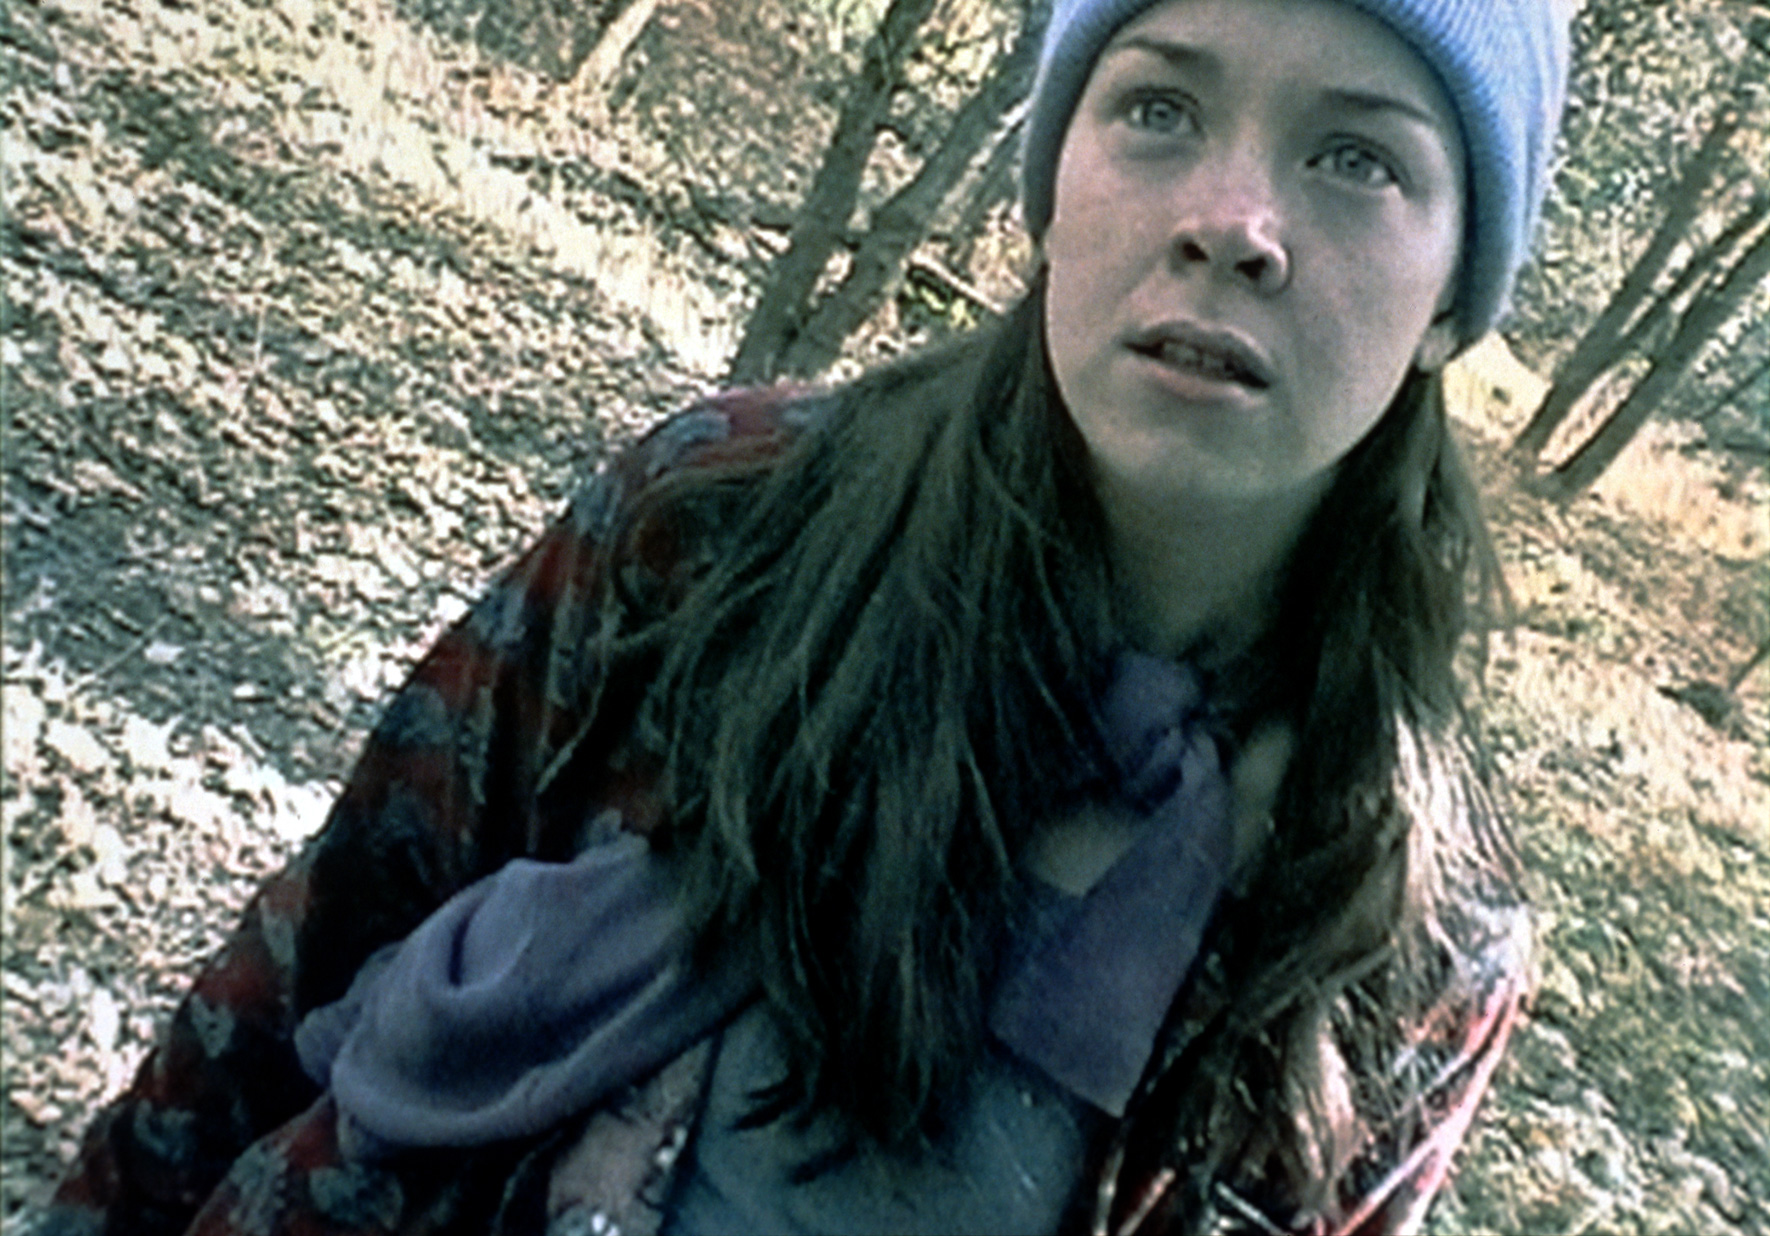 witch project '90s horror movie isn't gory but is still terrifying read common sense media's the blair witch project review, age rating, and parents guide.